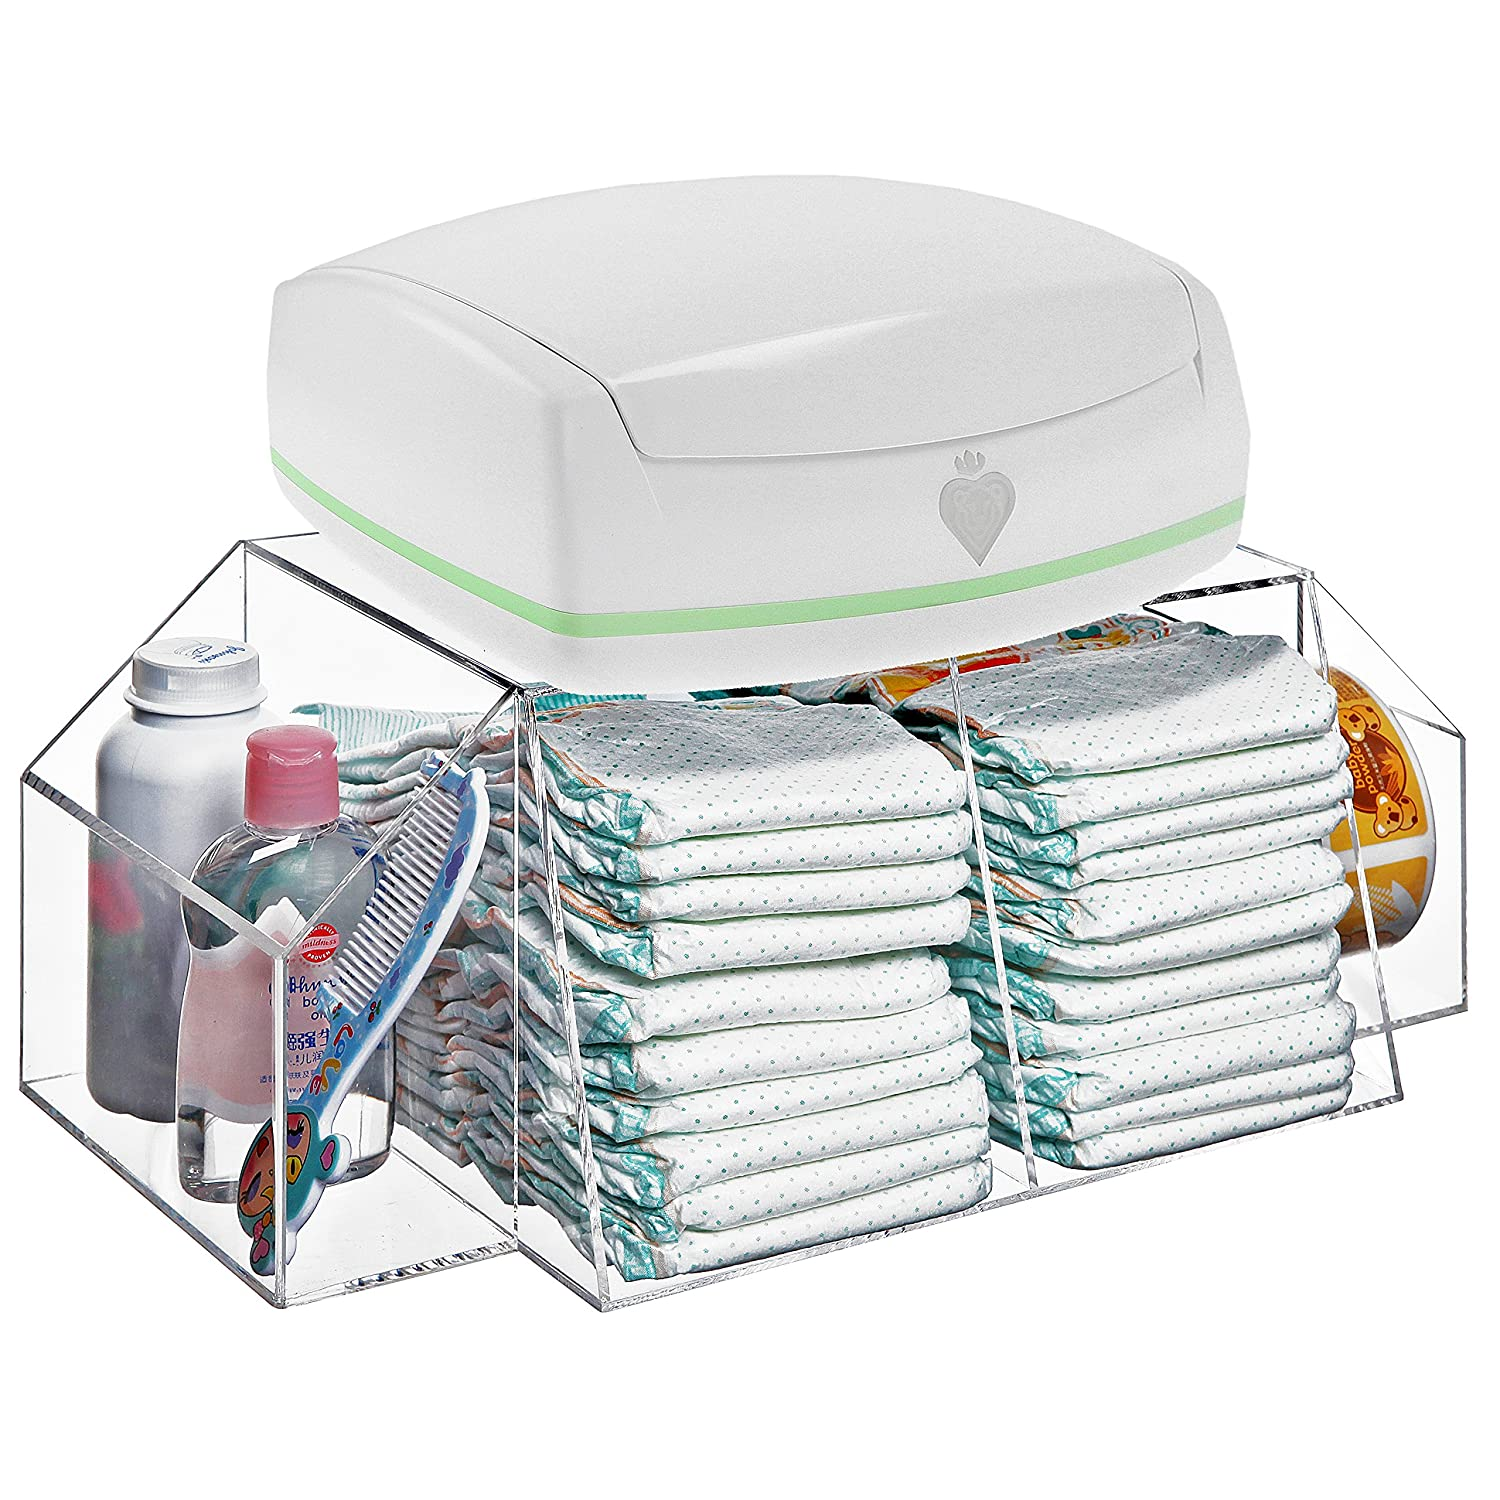 Amazon.com : Deluxe Clear Acrylic Baby Changing Table Top Diapers U0026  Accessories Storage Caddy / Baby Wipe Warmer Rack : Baby